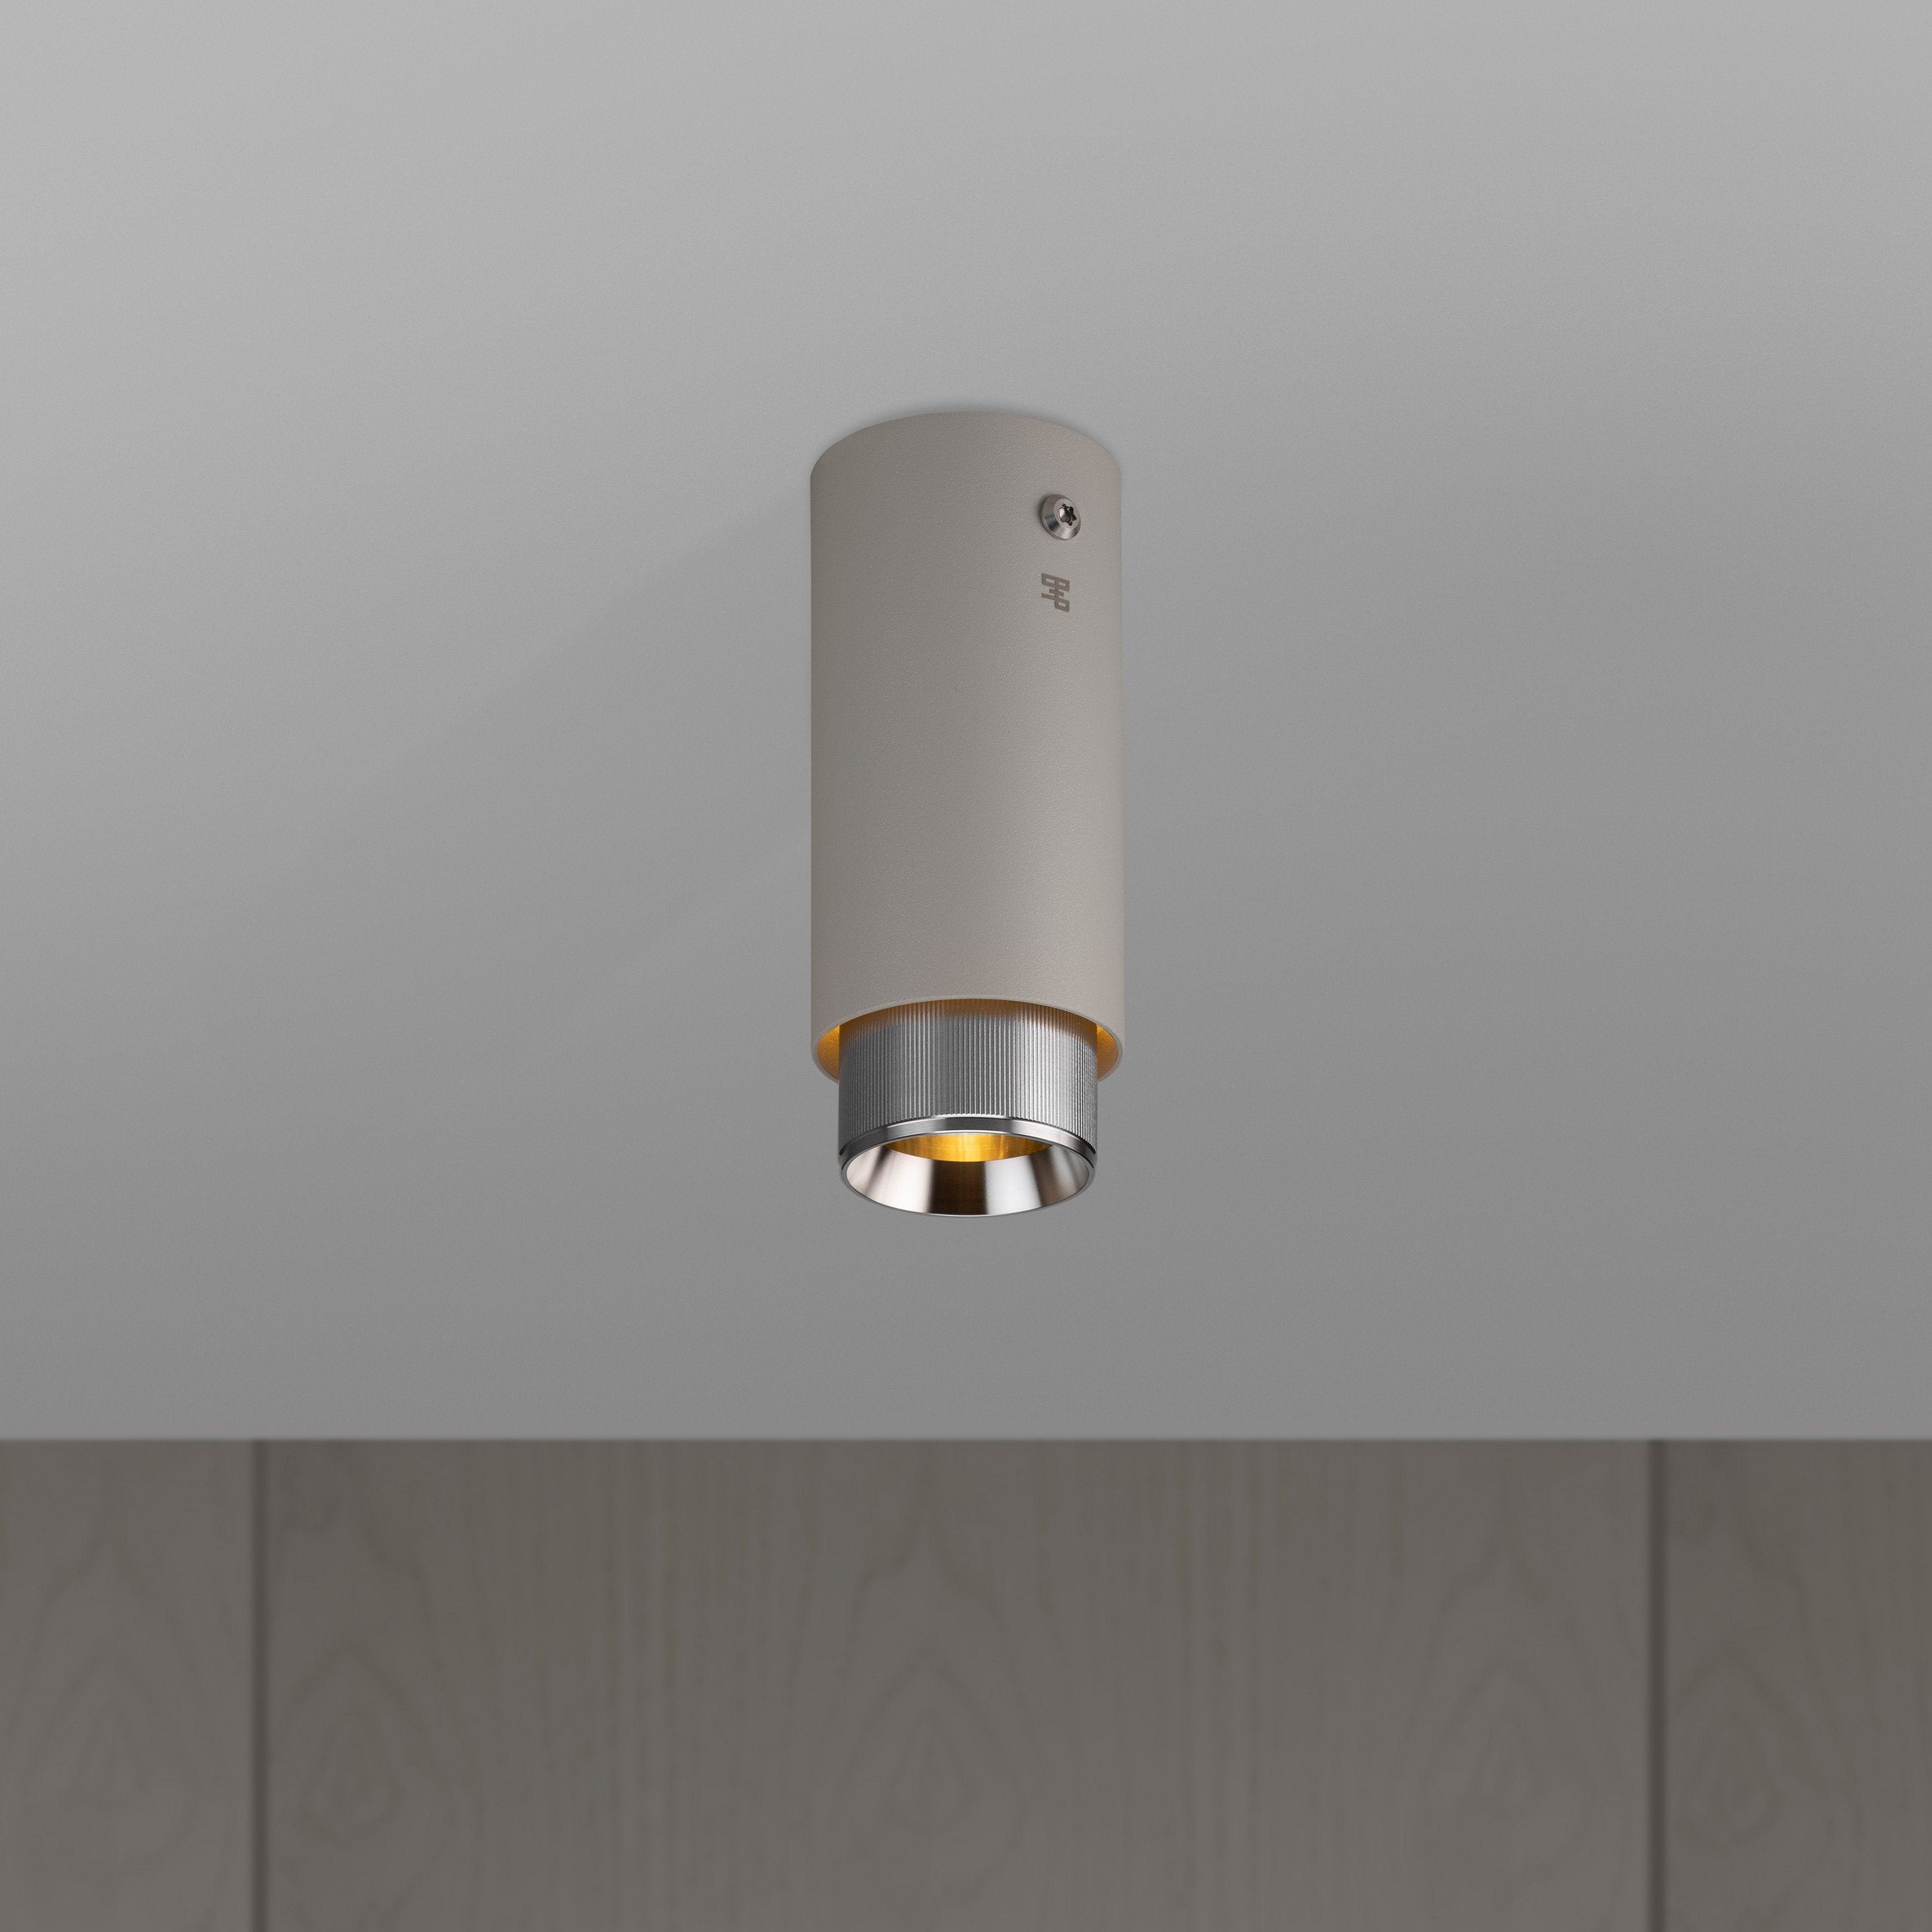 Buster and Punch EXHAUST SURFACE / STONE / STEEL - No.42 Interiors